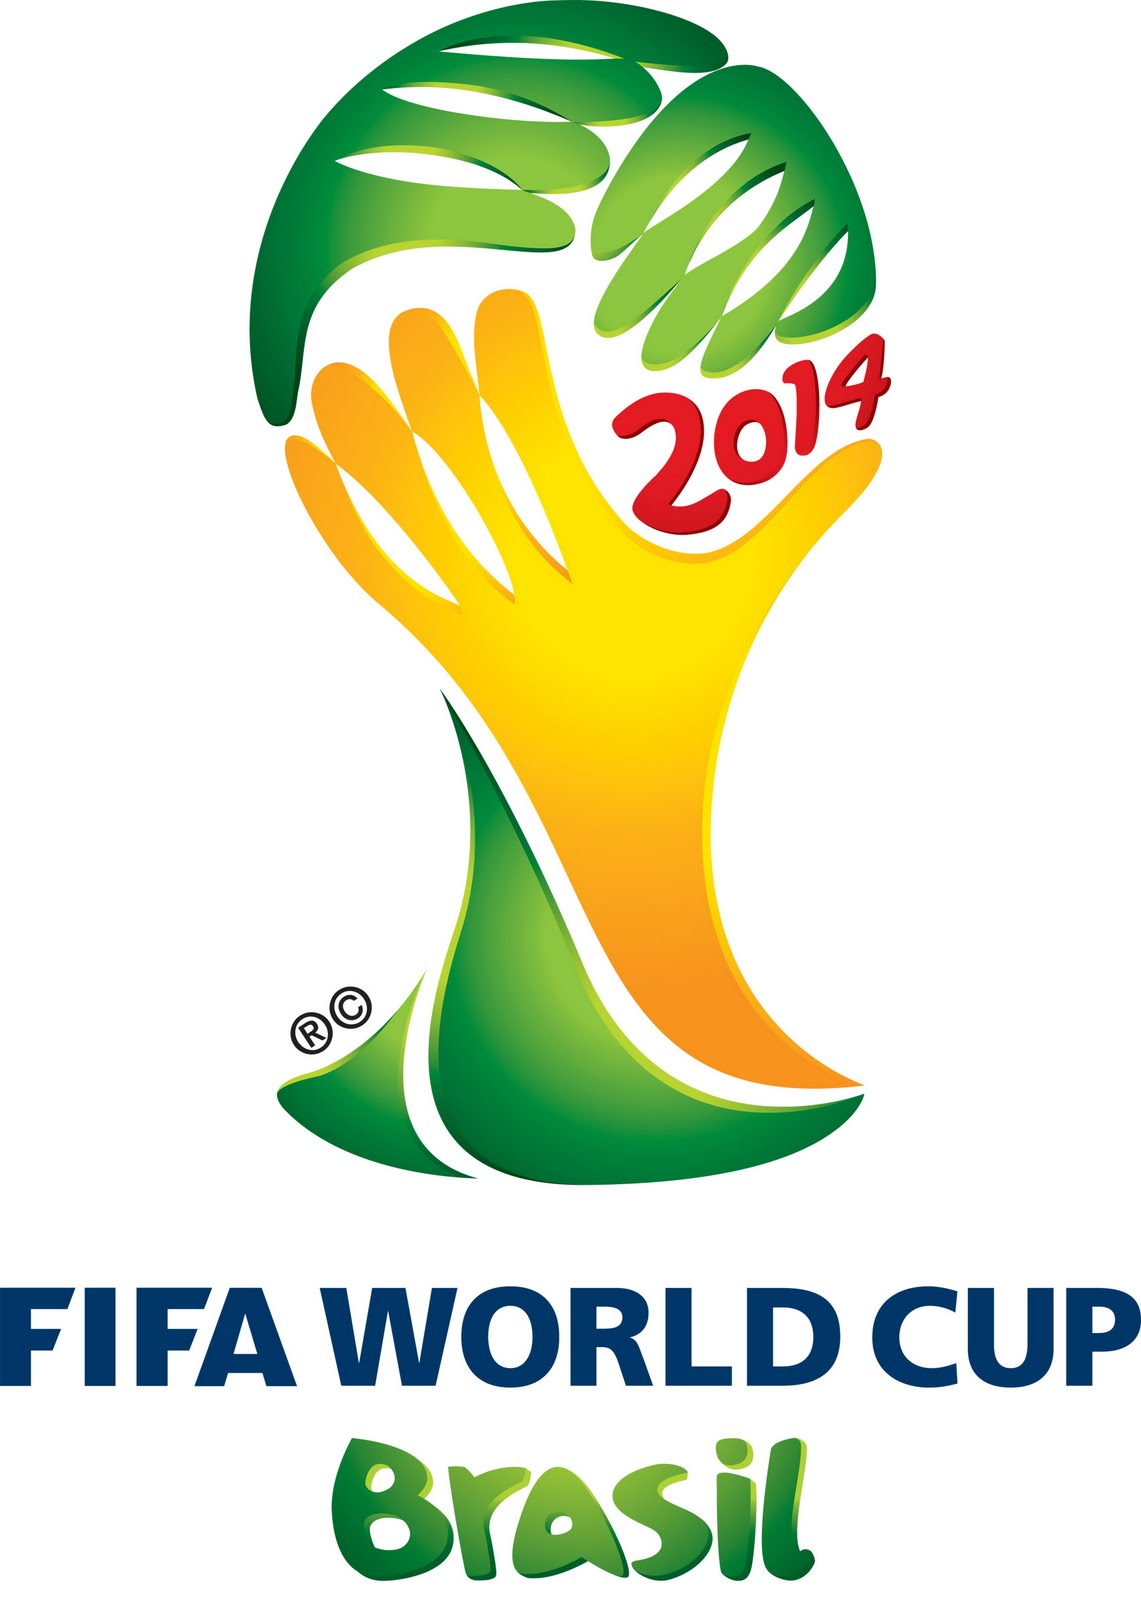 Fifa World Cup Brasil 2014 Official Song Archives - Just Tjat!